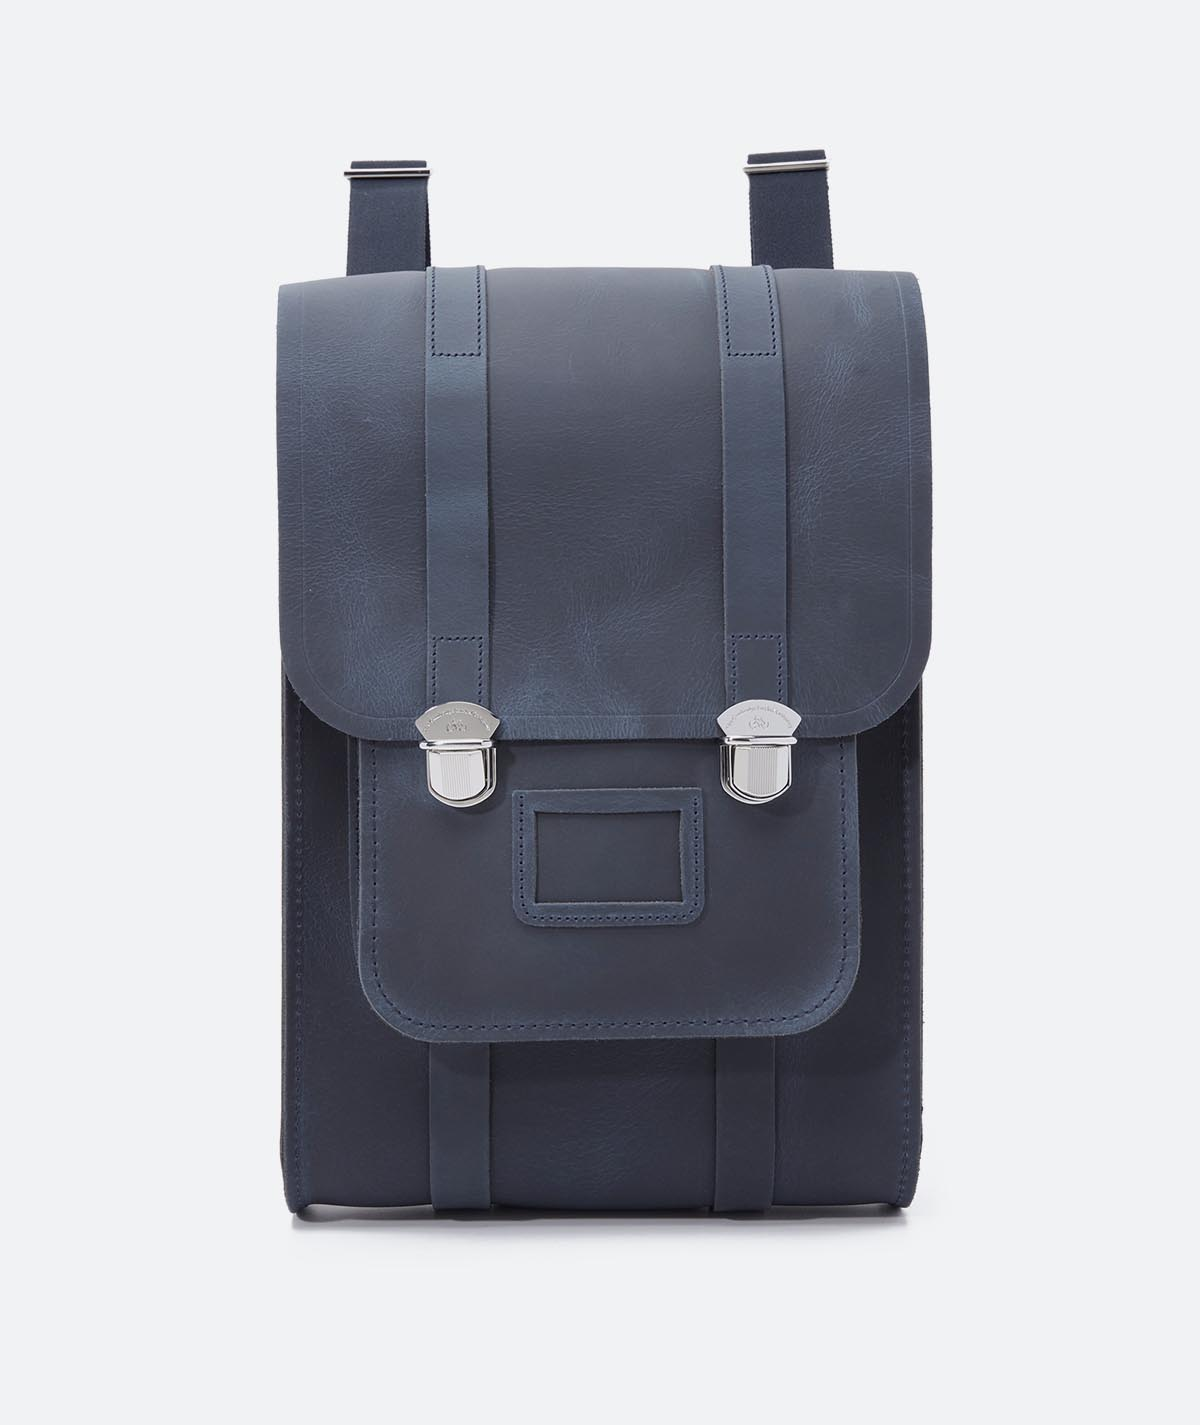 Second-hand Clothing - Bags